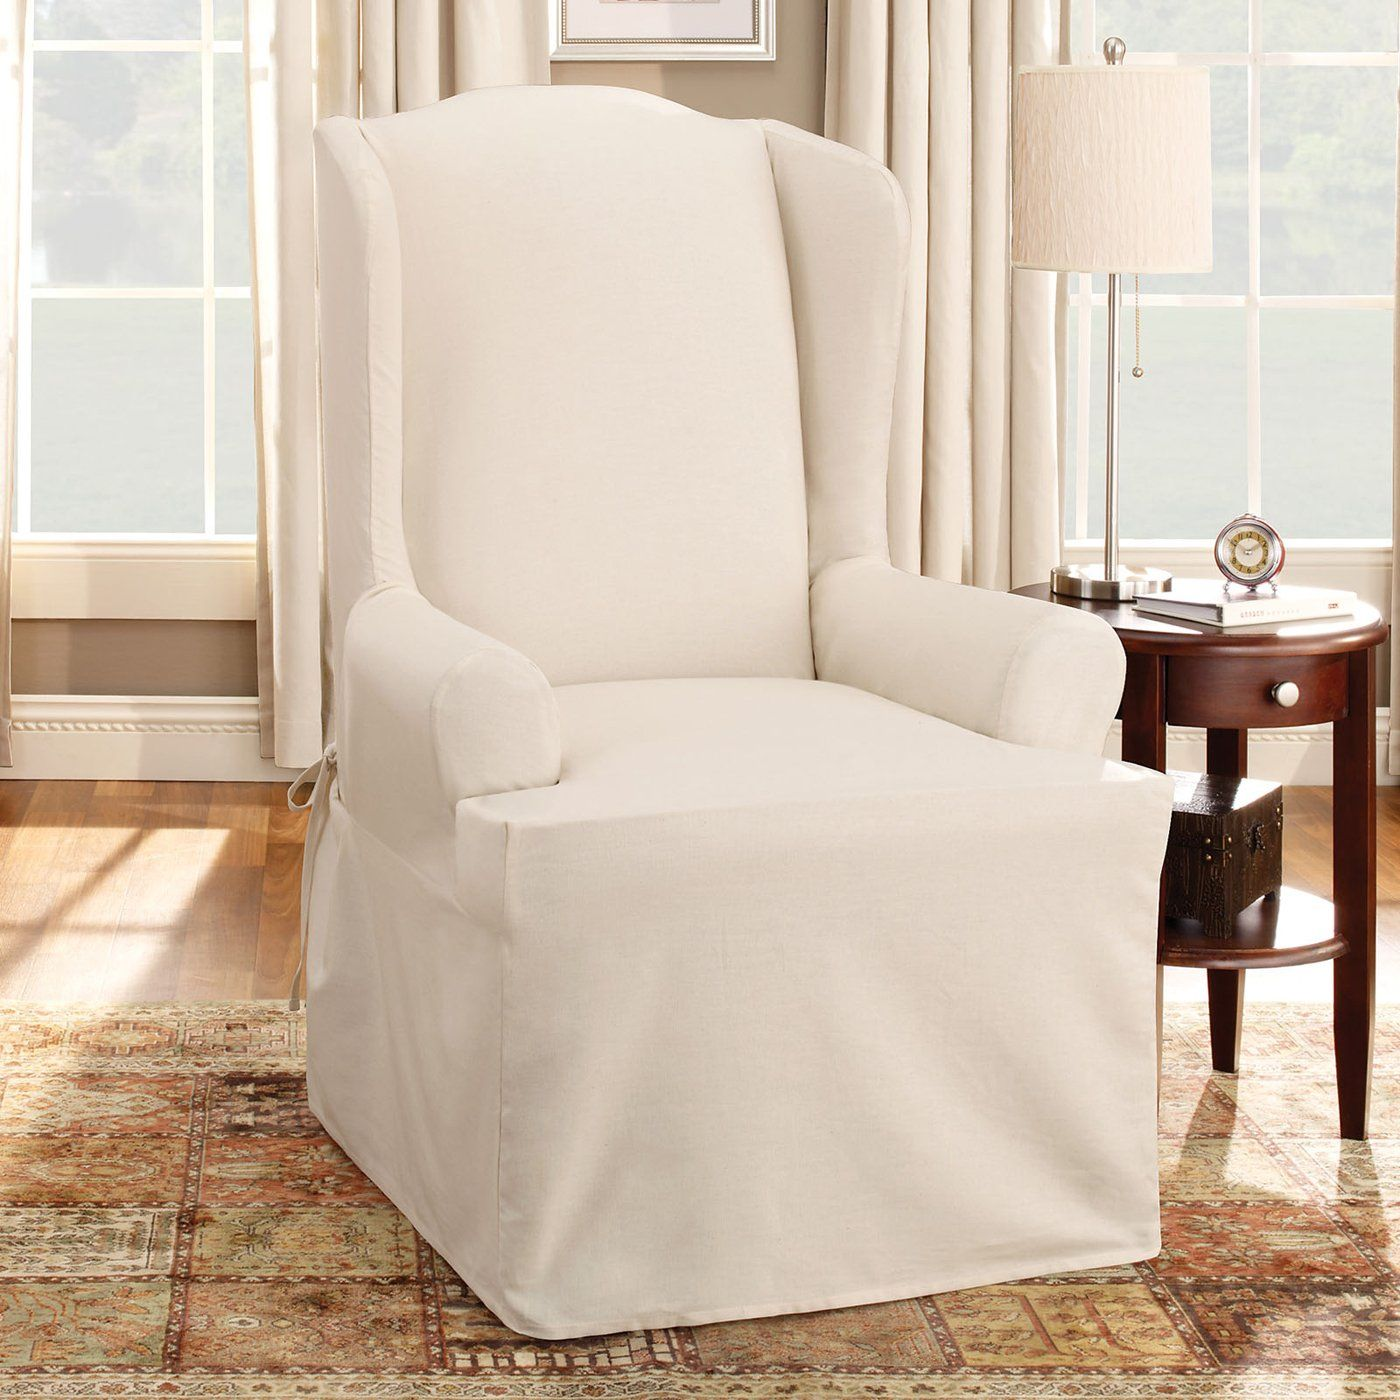 chair slip covers in store folding armless camping chairs shop sure fit slipcovers cotton duck wing slipcover at atg stores browse our all with free shipping and best price guaranteed